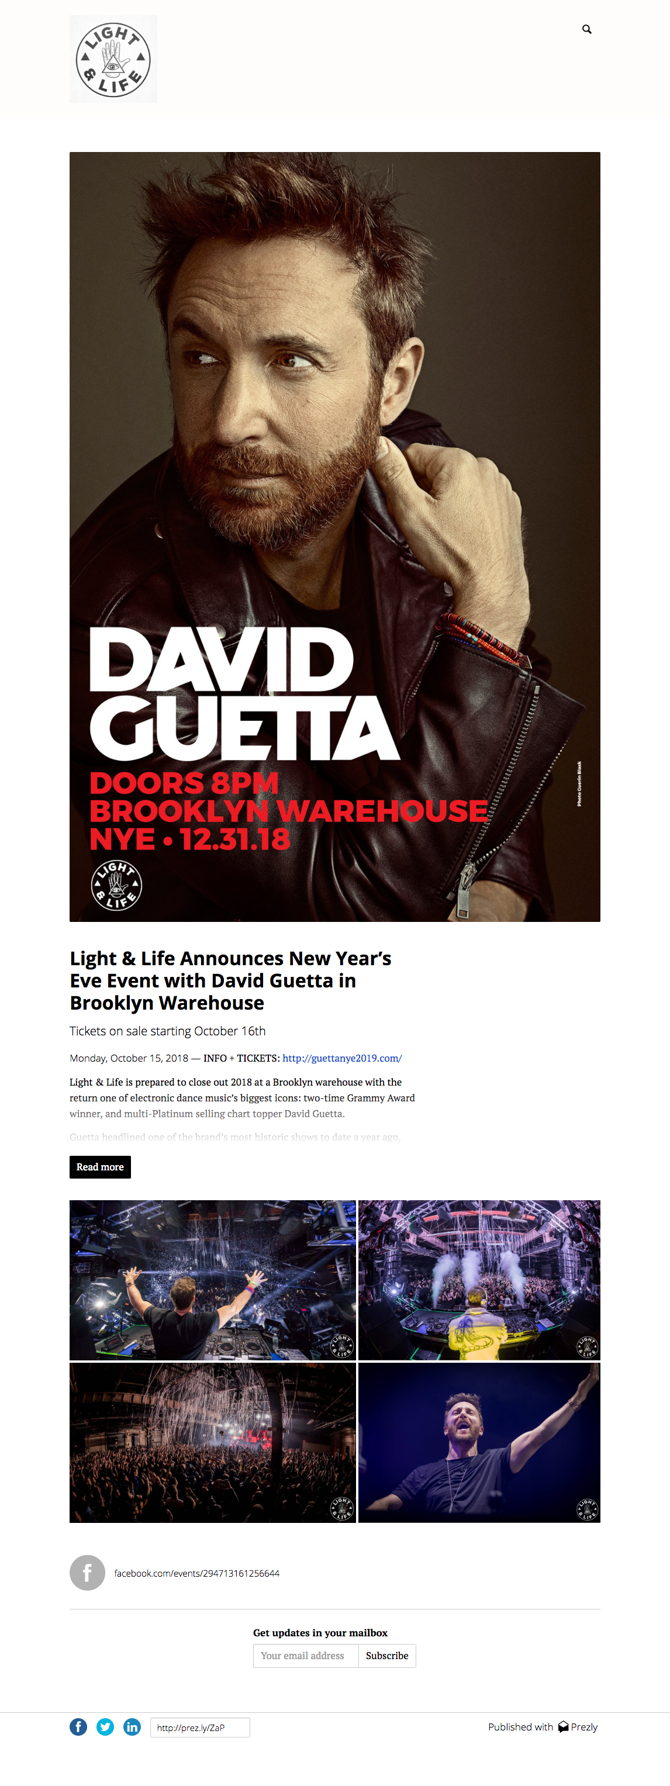 Light & Life Announces New Year's Eve Event with David Guetta in Brooklyn Warehouse